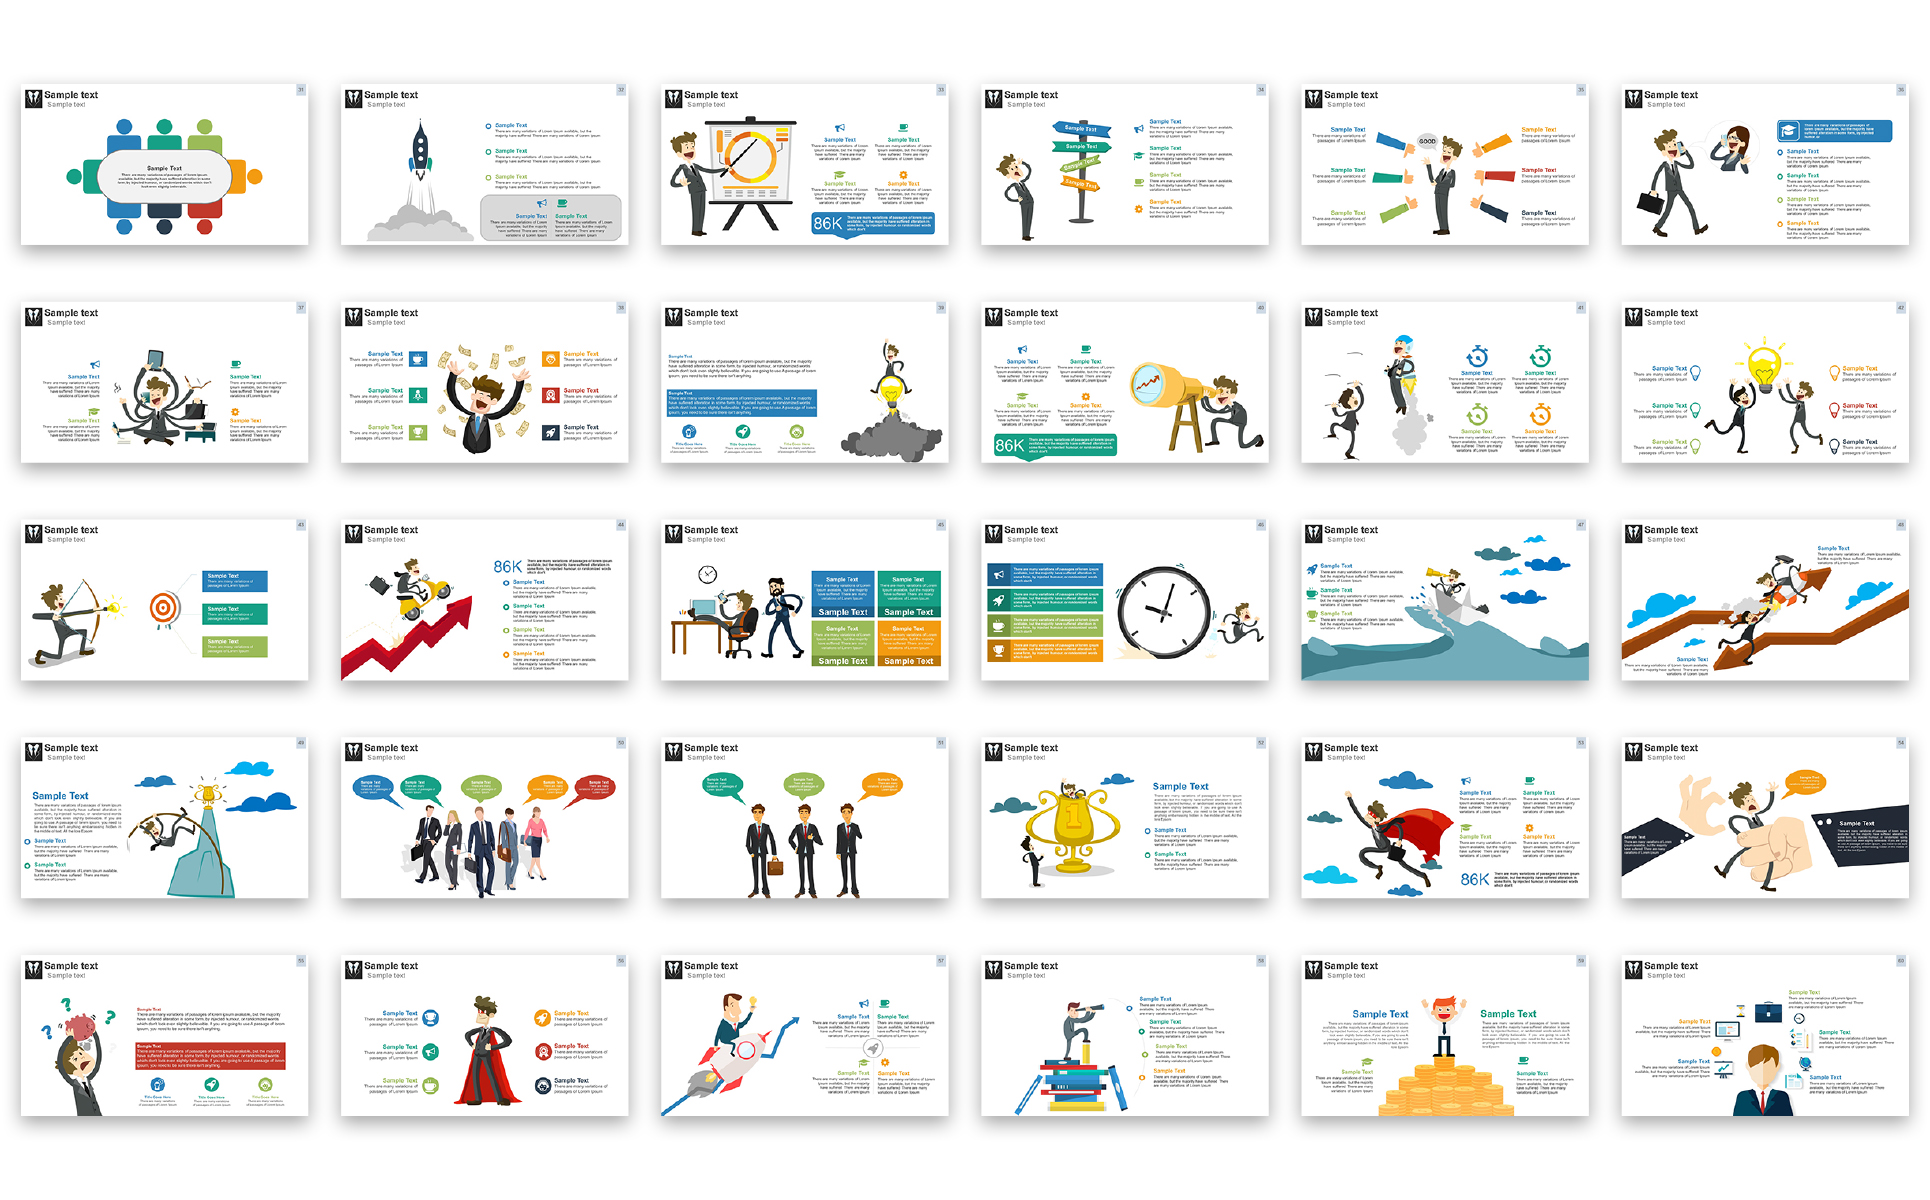 Business presentation powerpoint template 67451 business presentation powerpoint template big screenshot wajeb Images